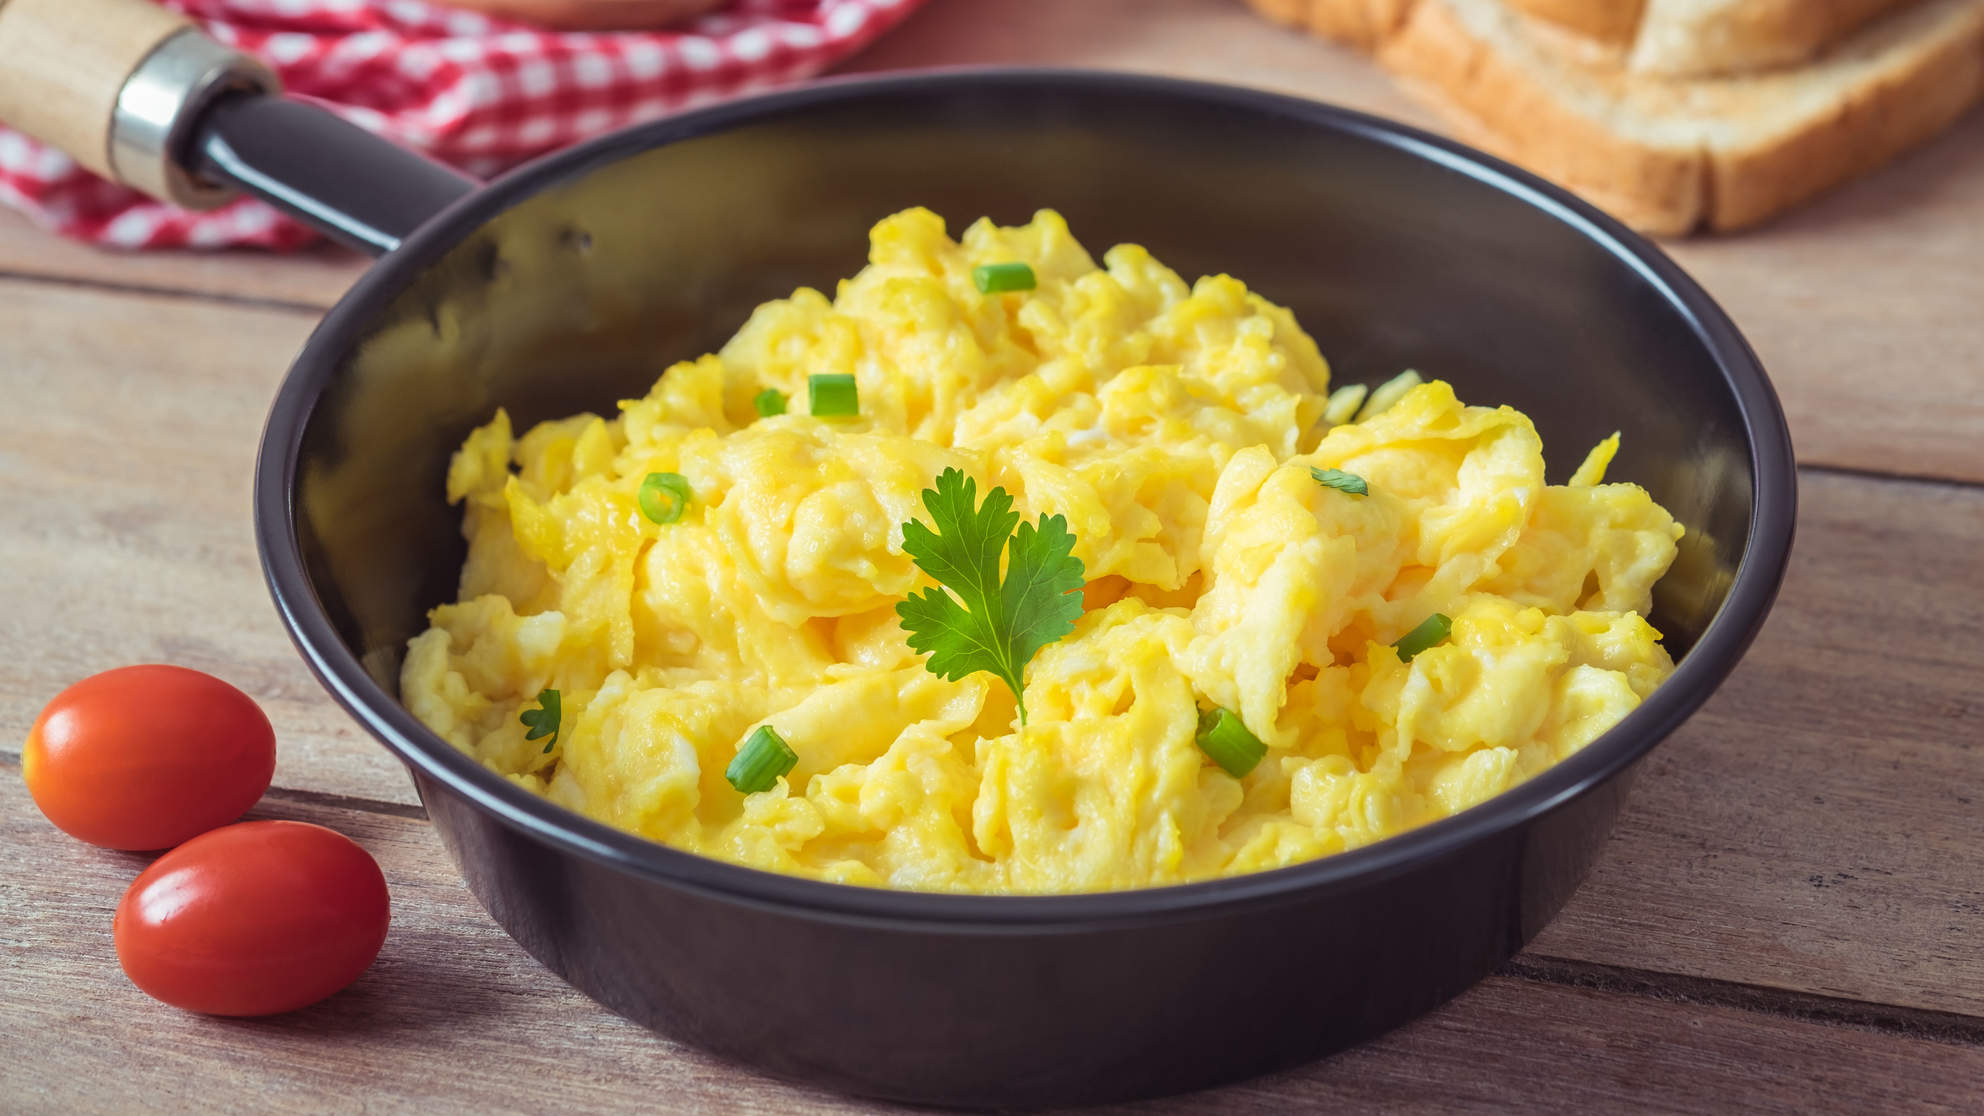 Why Adding Milk To Your Scrambled Eggs Is a Mistake